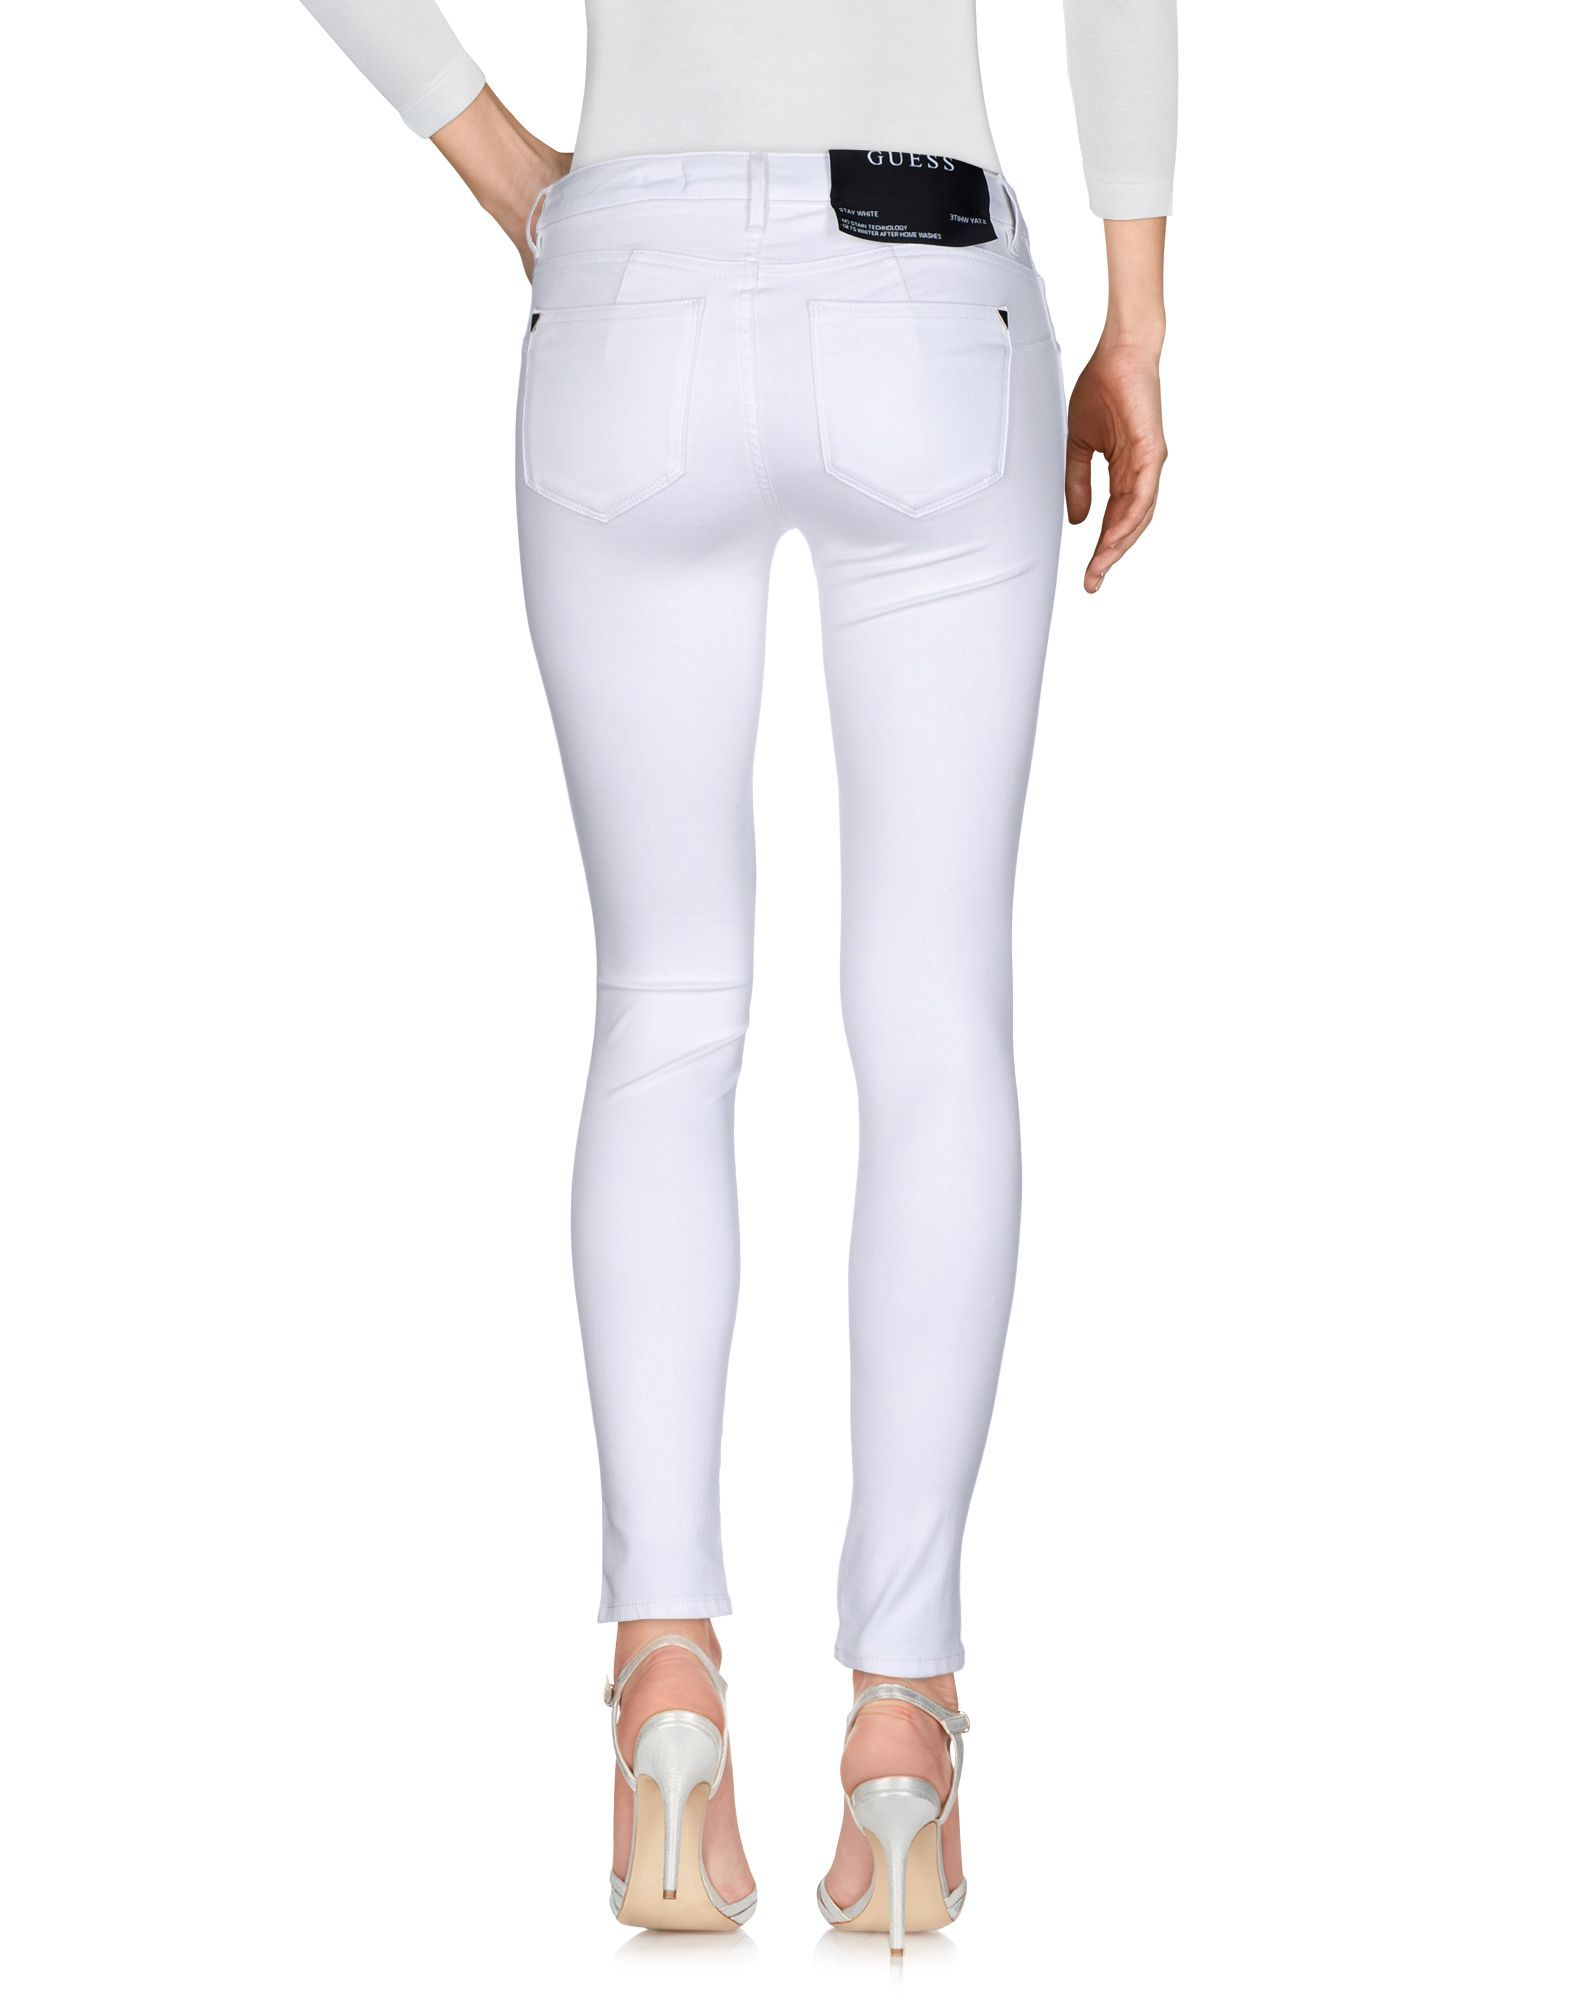 Guess White Cotton Skinny Jeans